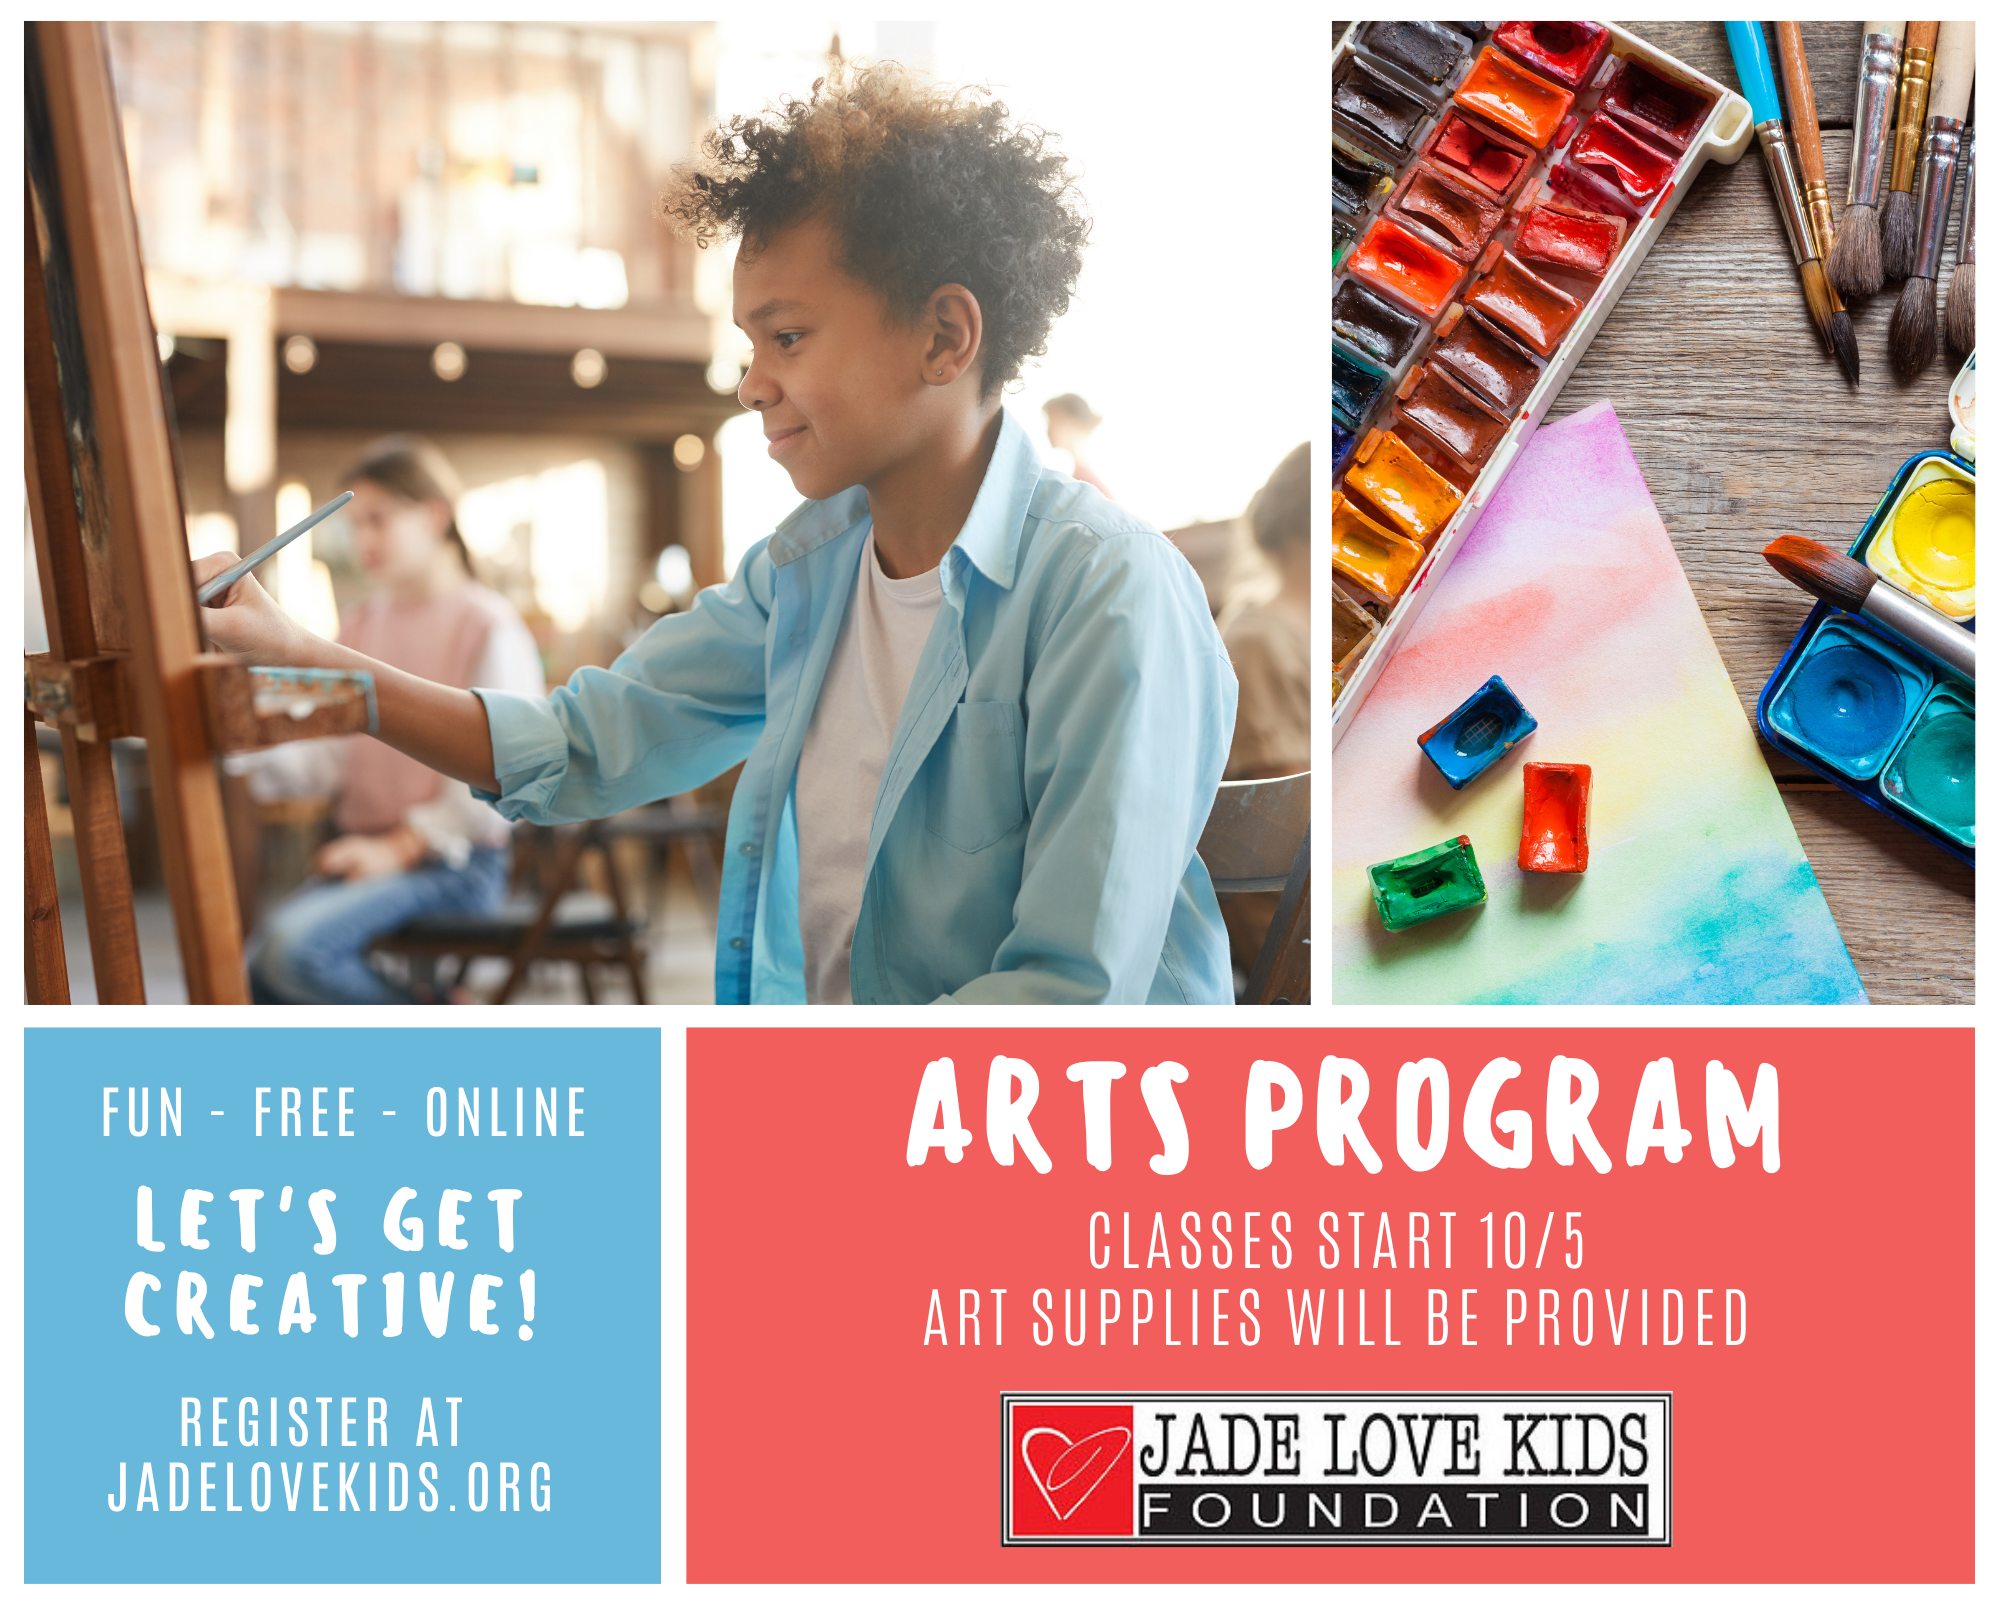 Free Online Arts Program for Kids & Teens v2